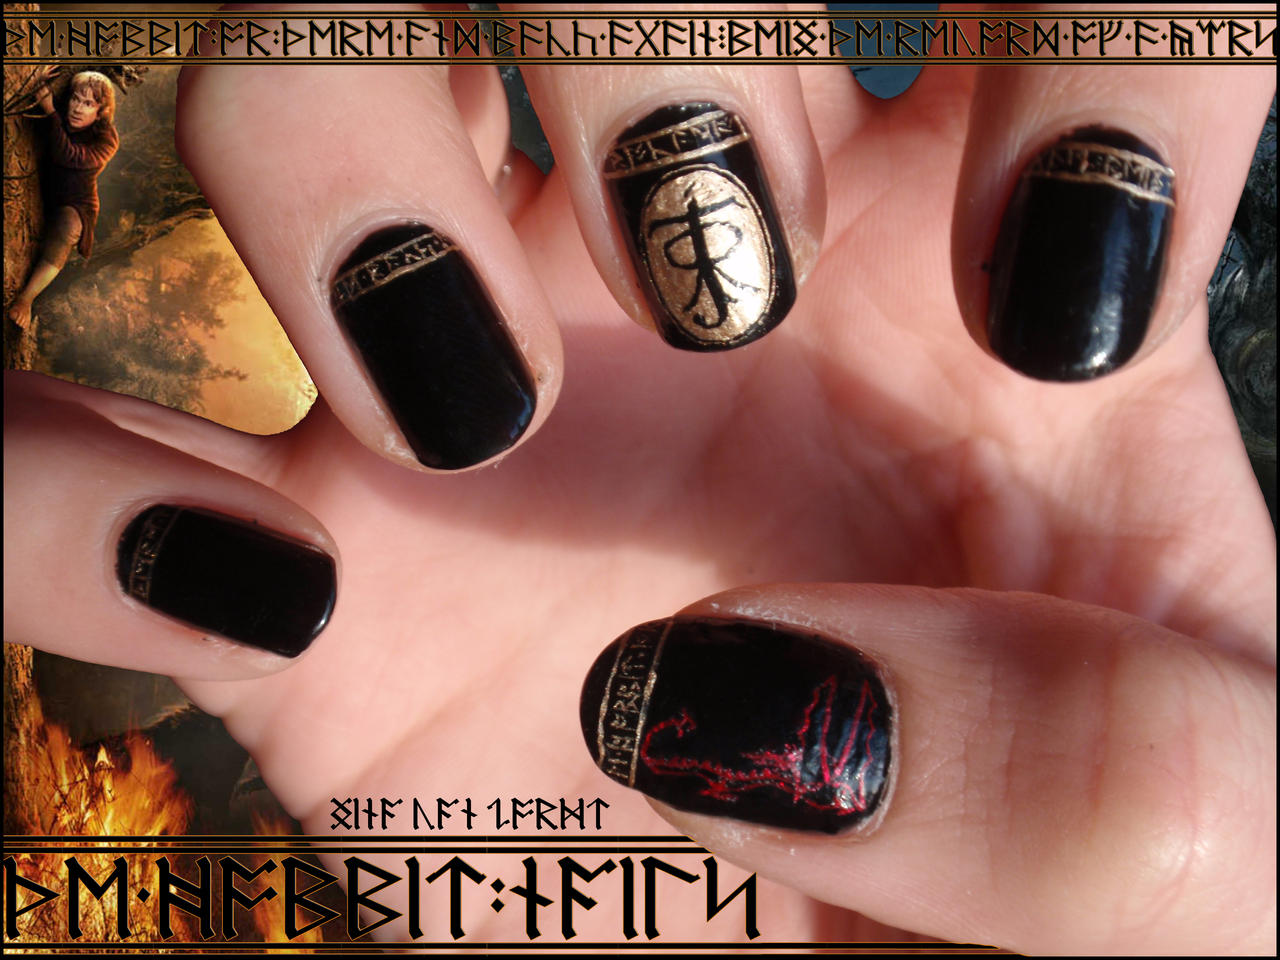 The hobbit nails by ninails on deviantart the hobbit nails by ninails the hobbit nails by ninails prinsesfo Images